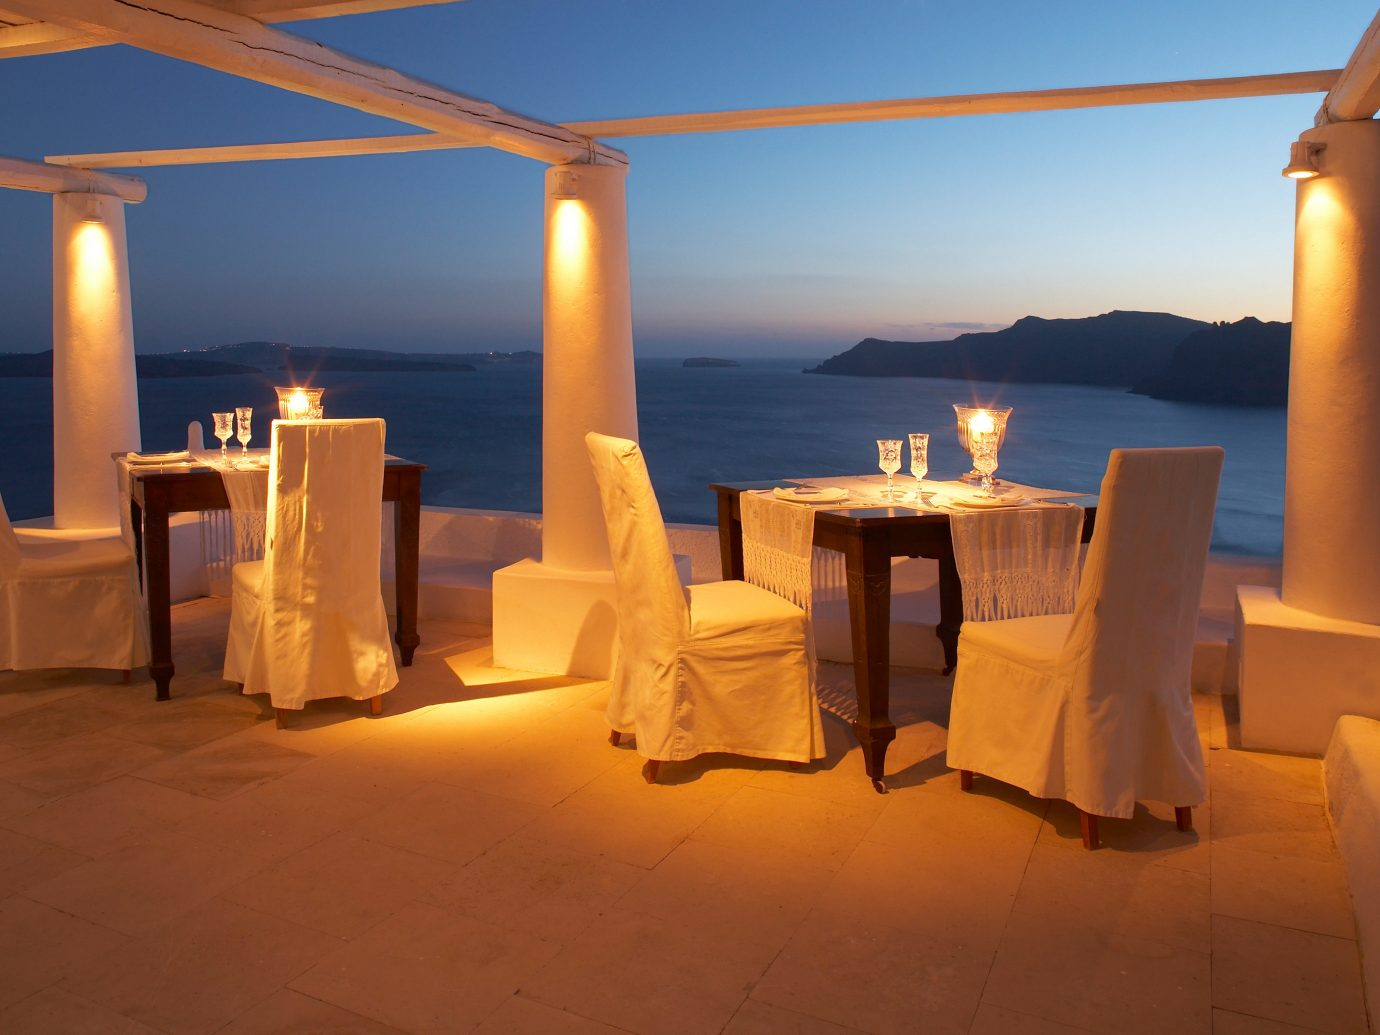 Beachfront Dining Drink Eat Greece Hotels Ocean Romantic Santorini Sunset sky outdoor light evening lighting shape restaurant